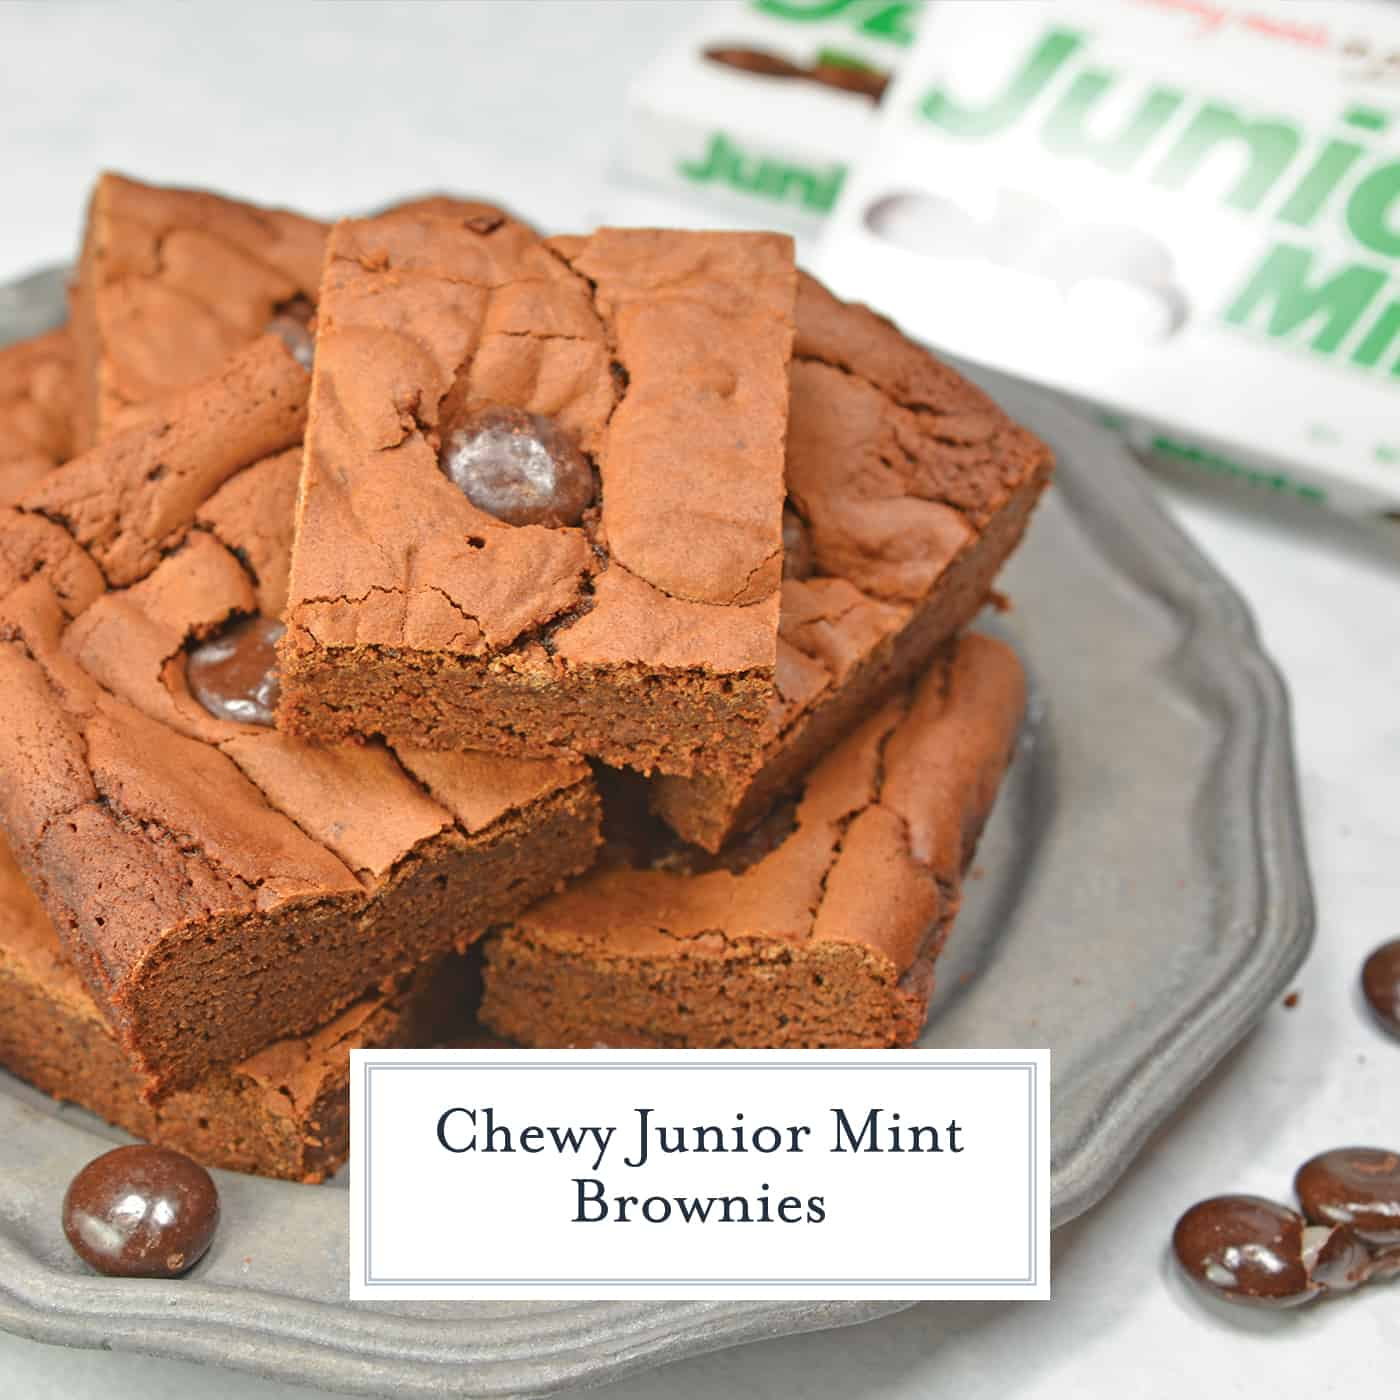 Junior Mint Brownies are homemade brownies blended with cool, creamy Junior Mints. This delicious chewy brownie recipe will satisfy any brownie cravings! #homemadebrownies #juniormints #chewybrownierecipe www.savoryexperiments.com